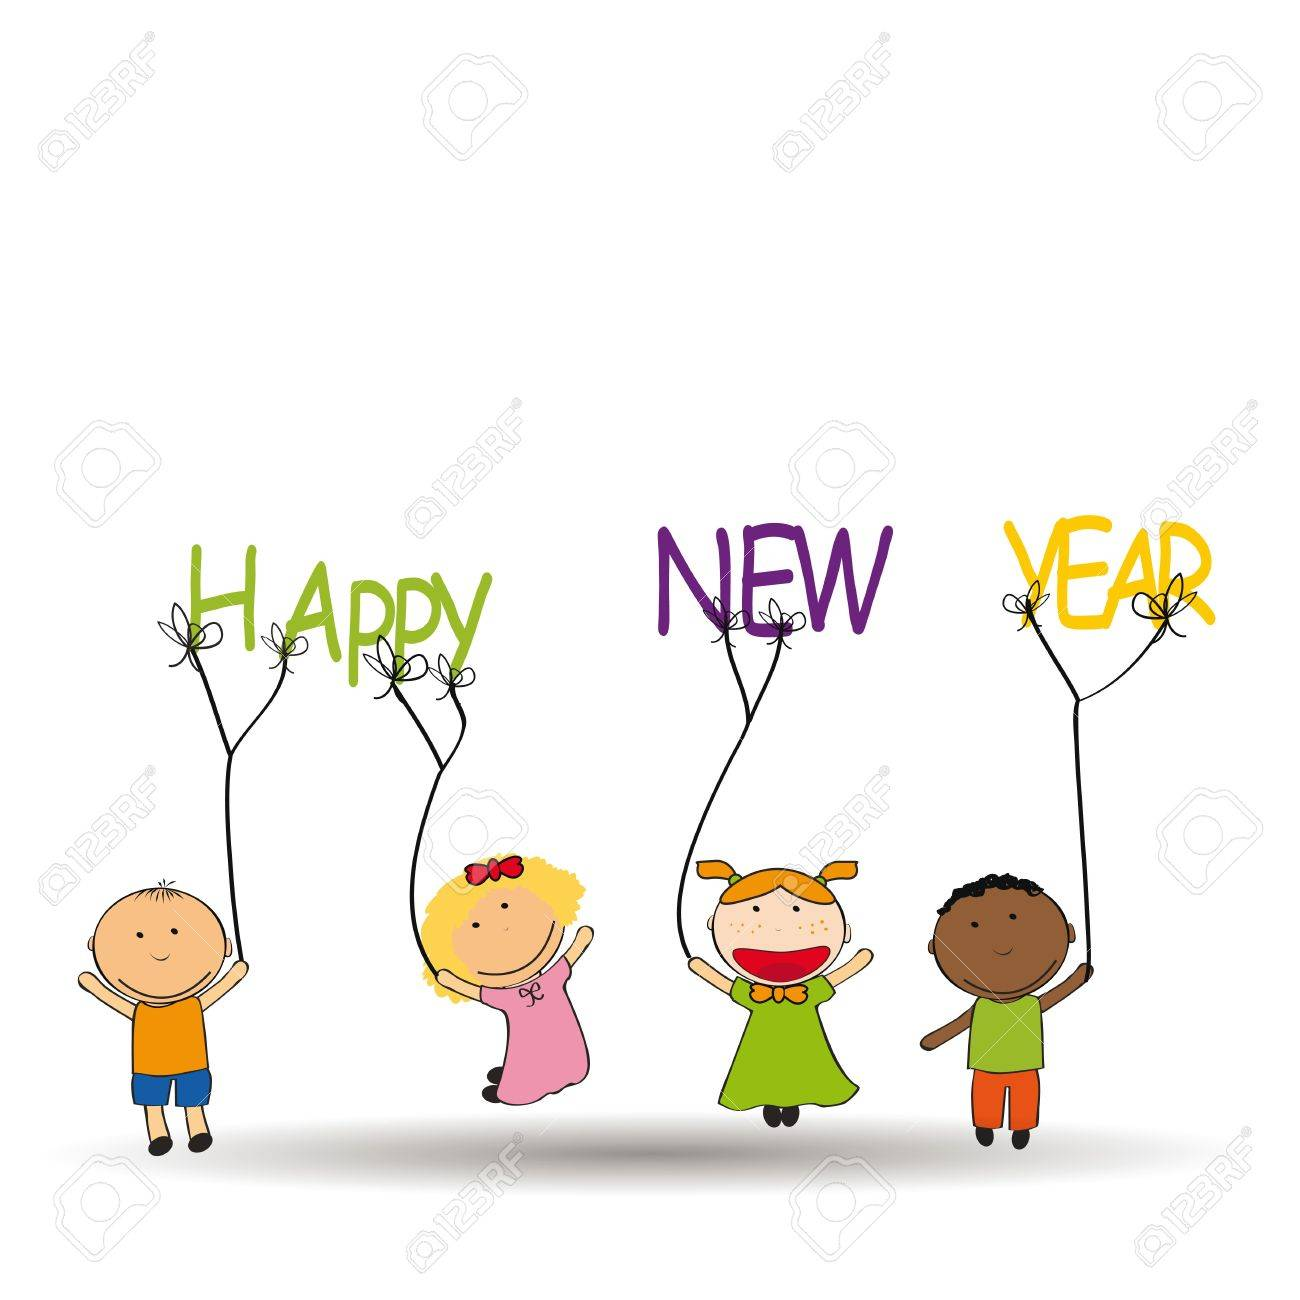 Cute and colorful card New Year 2014 Stock Vector - 20734605